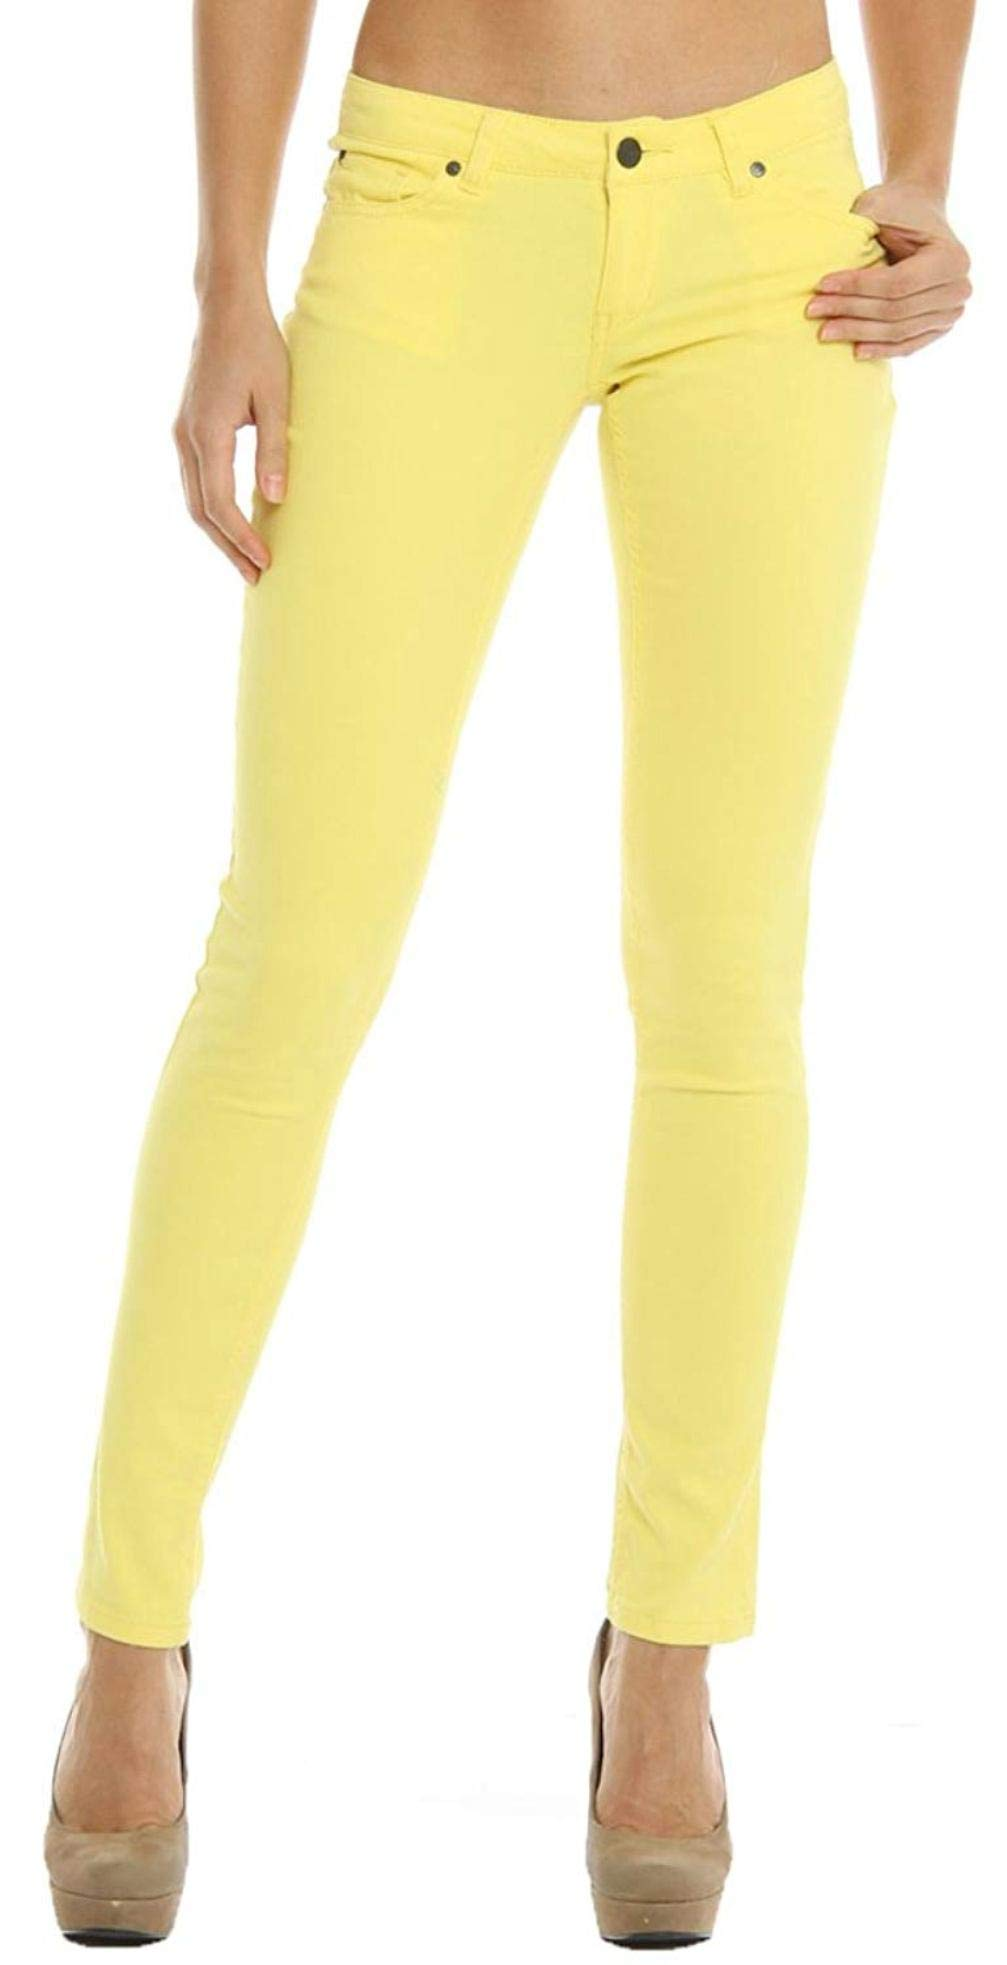 Masoi 1826 Color Series Junior's Women's Skinny Jeans Stretch Pants (1, Yellow)